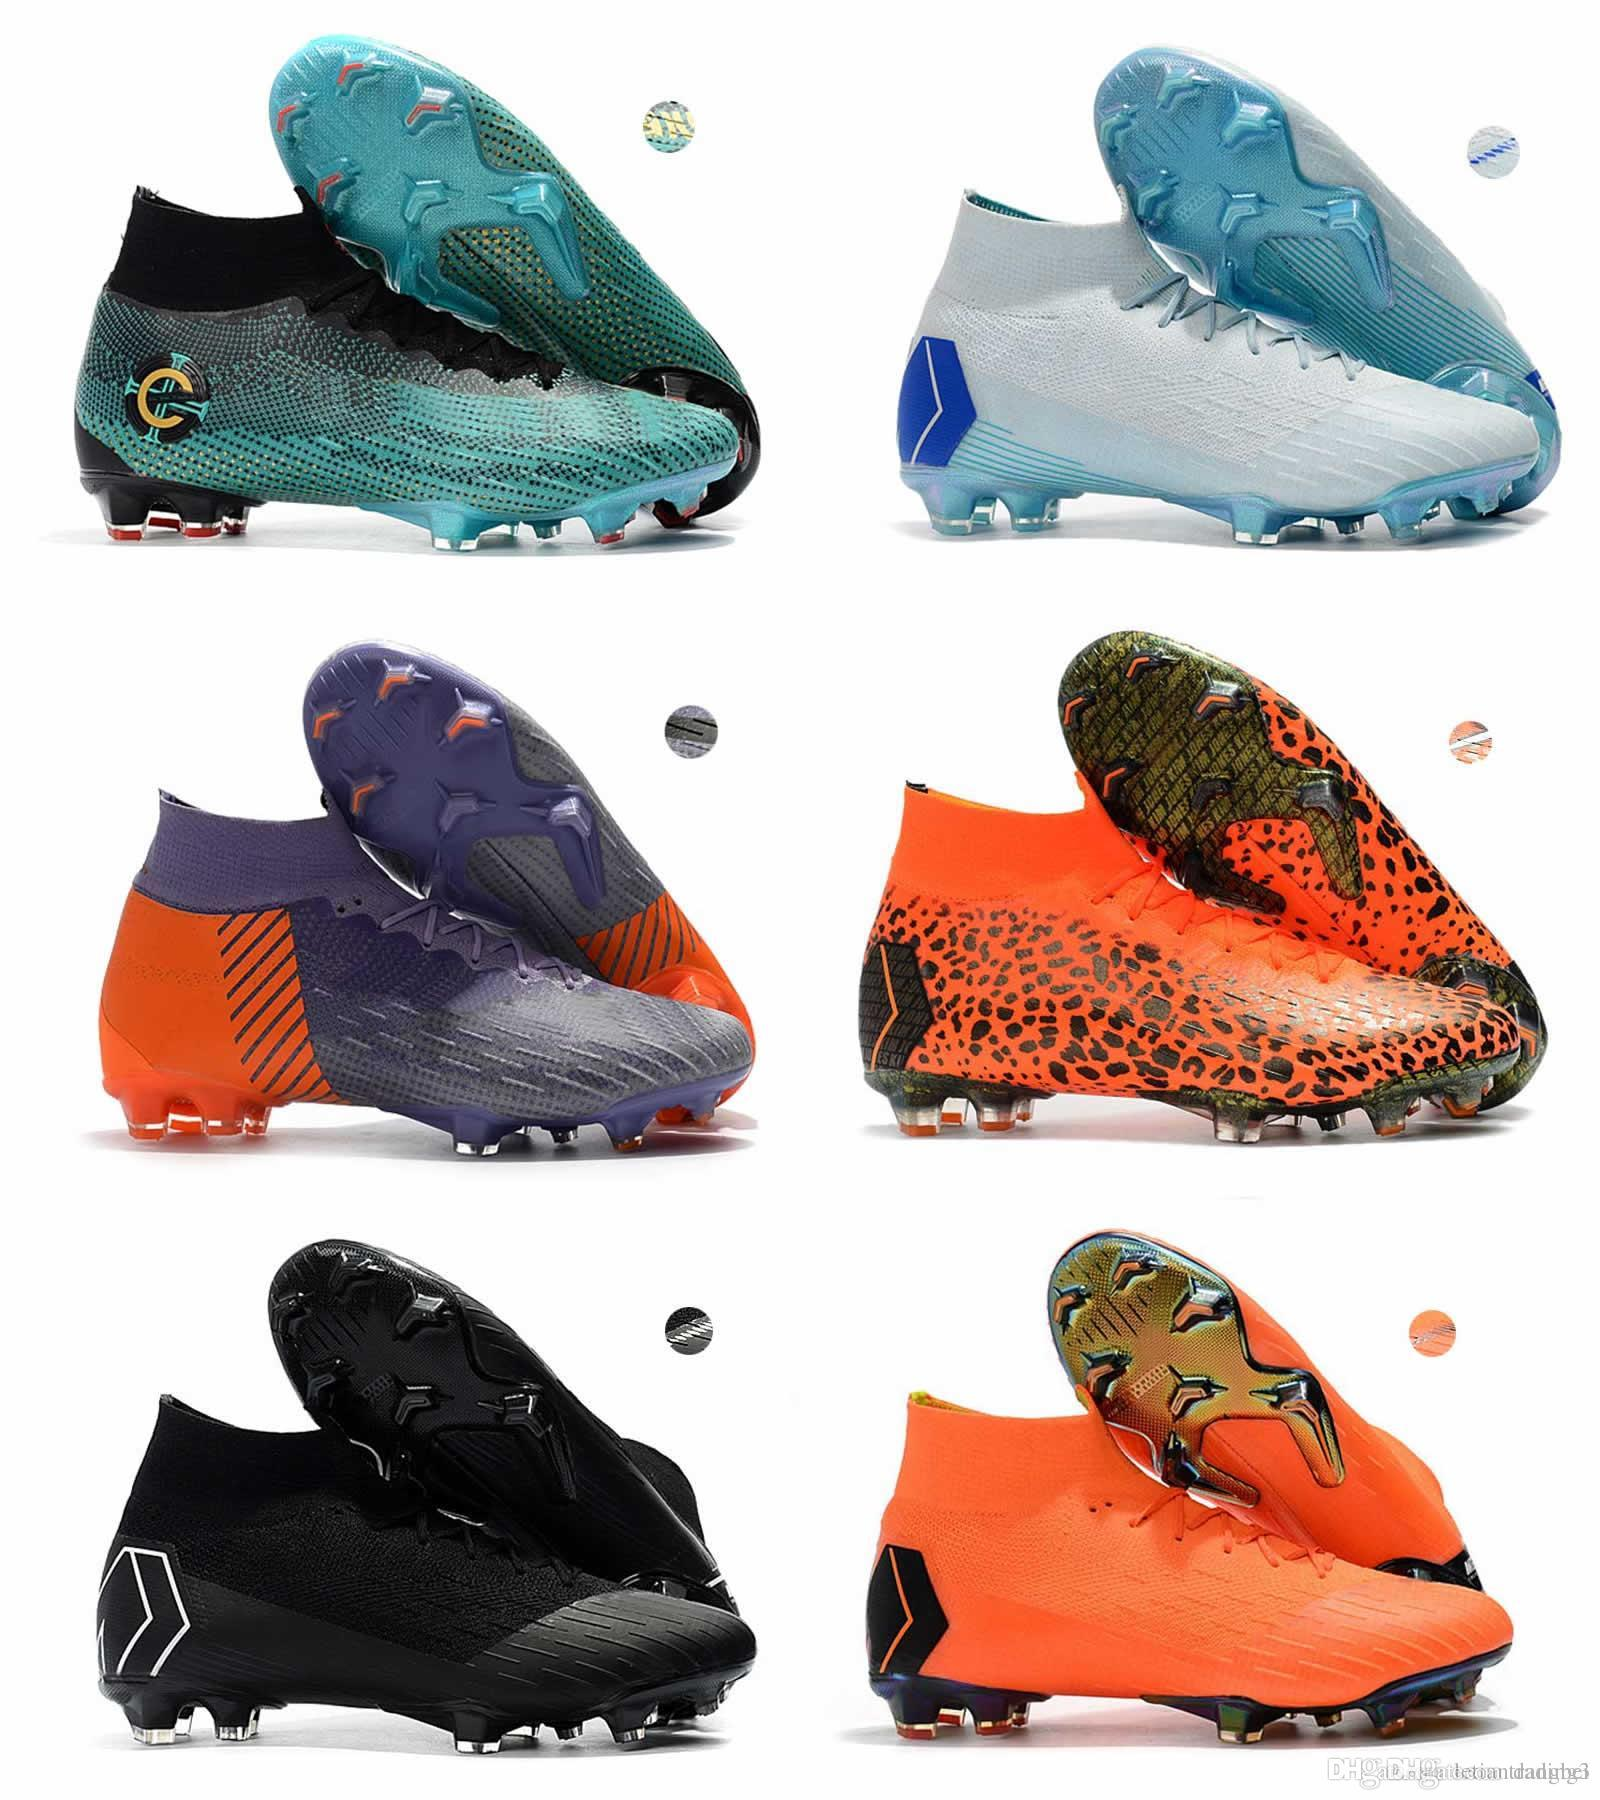 74ccce1c4 2018 Newest World Cup Mens Mercurial Superfly VI 360 Elite FG Football  Boots Neymar JR ACC Outdoor Soccer Shoes Ronaldo Soccer Cleats